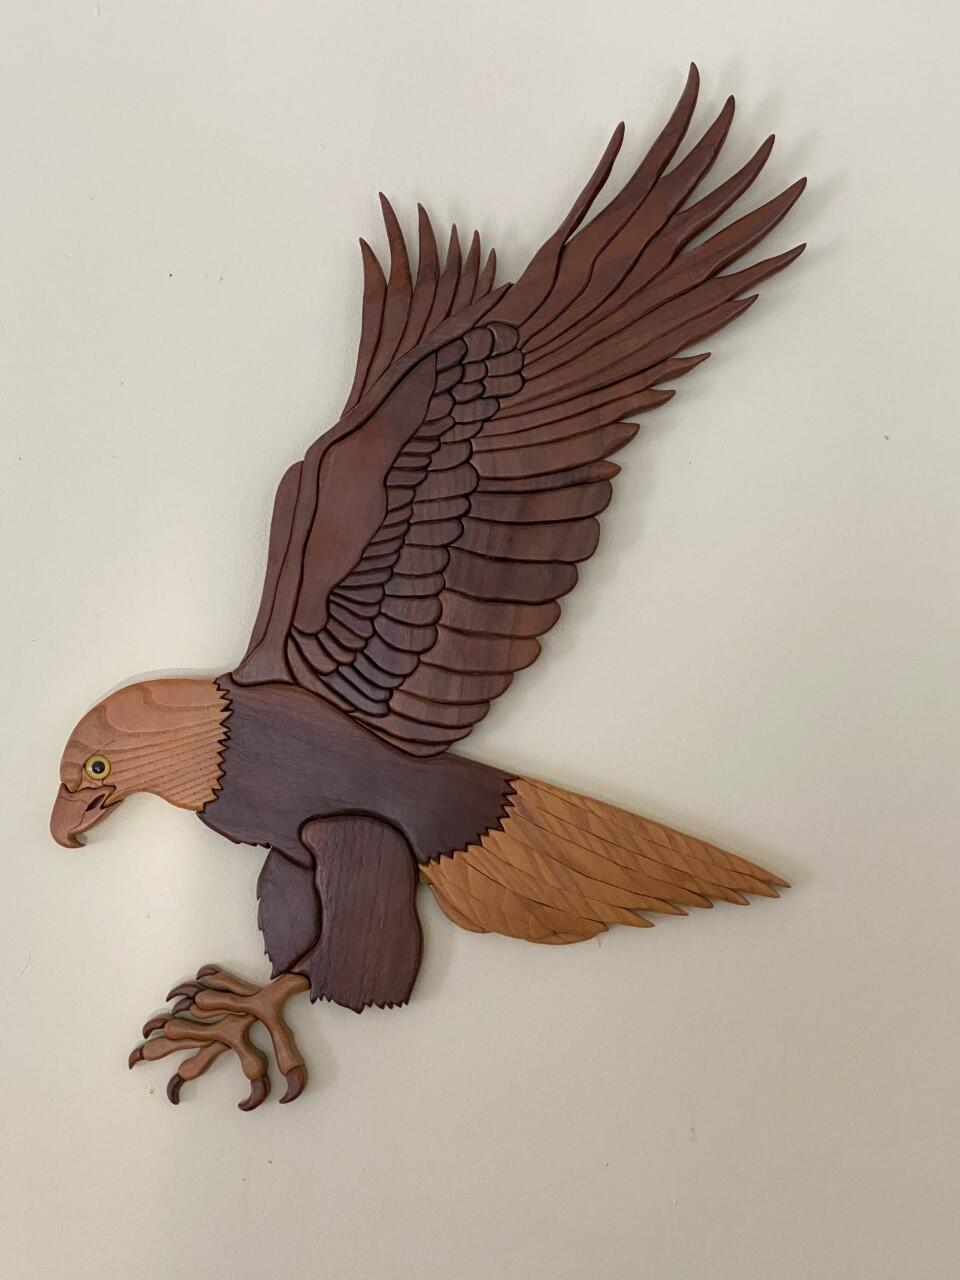 Carved wooden eagle in flight with talons extended.